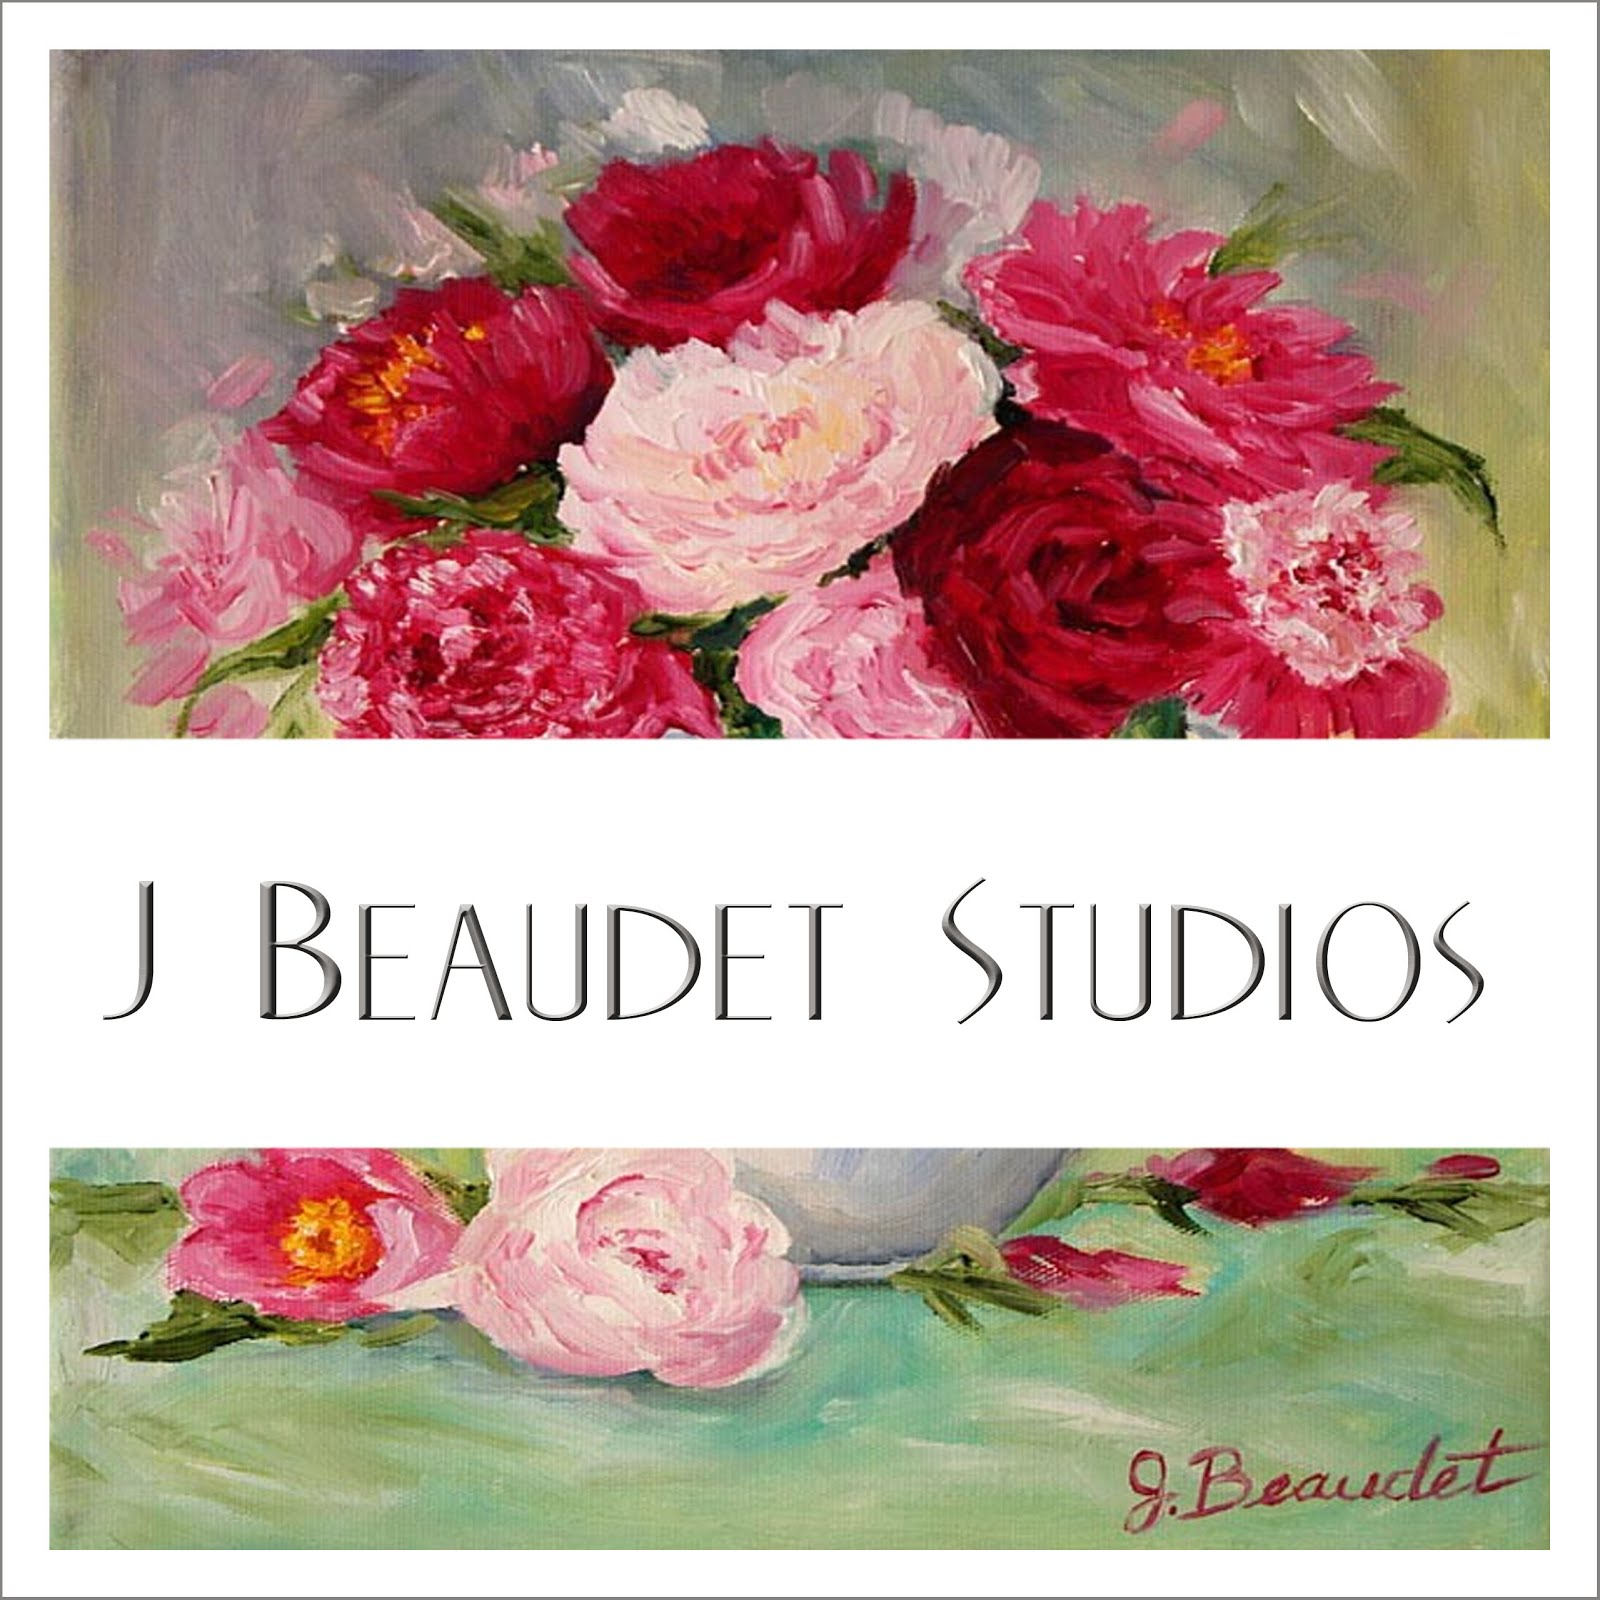 BEAUDET ART on instagram